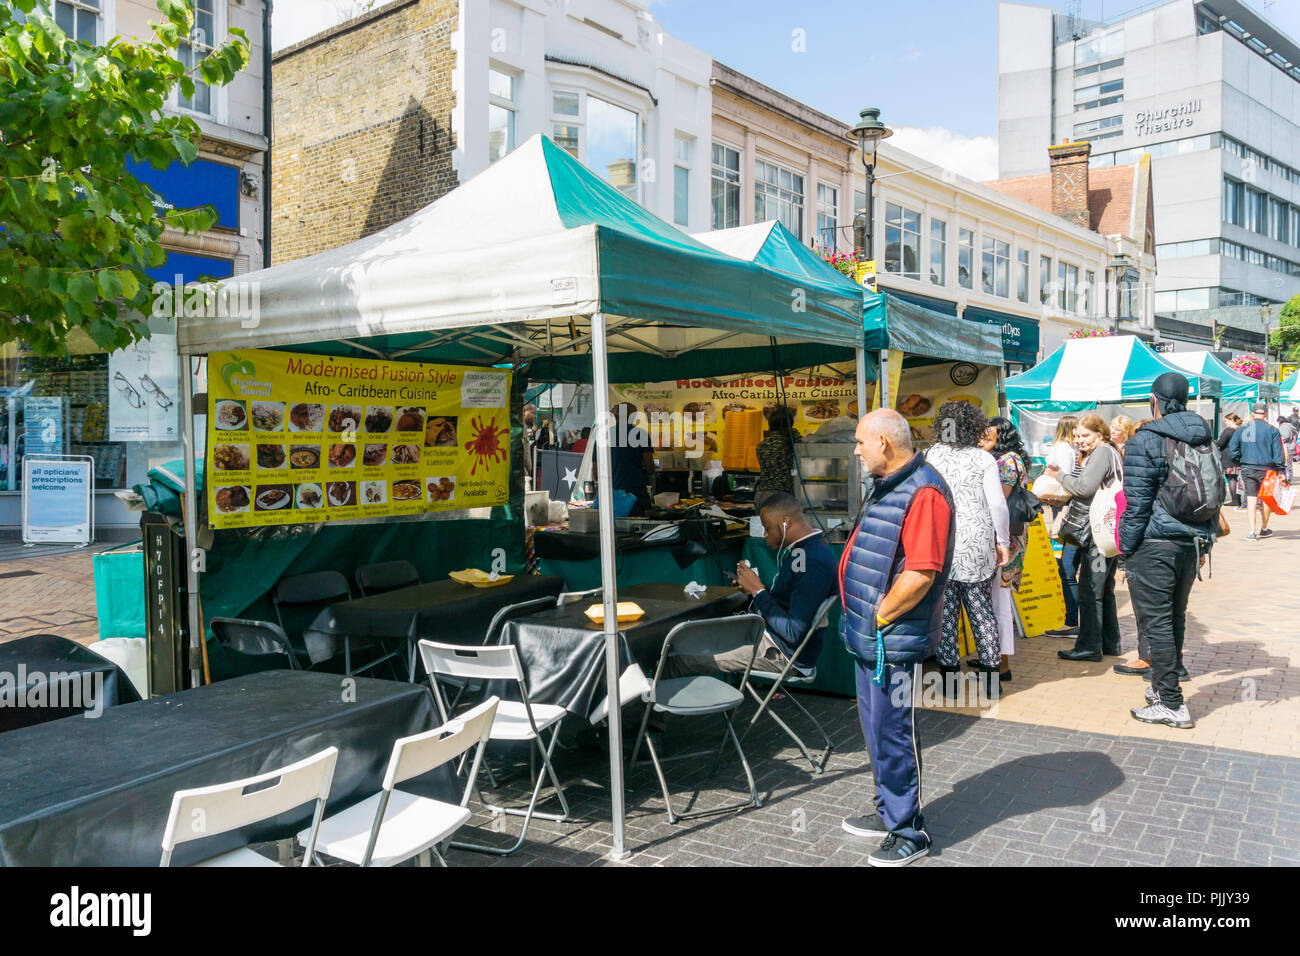 Street food stall in Bromley High Street selling modernised fusion style Afro-Caribbean Cuisine. - Stock Image